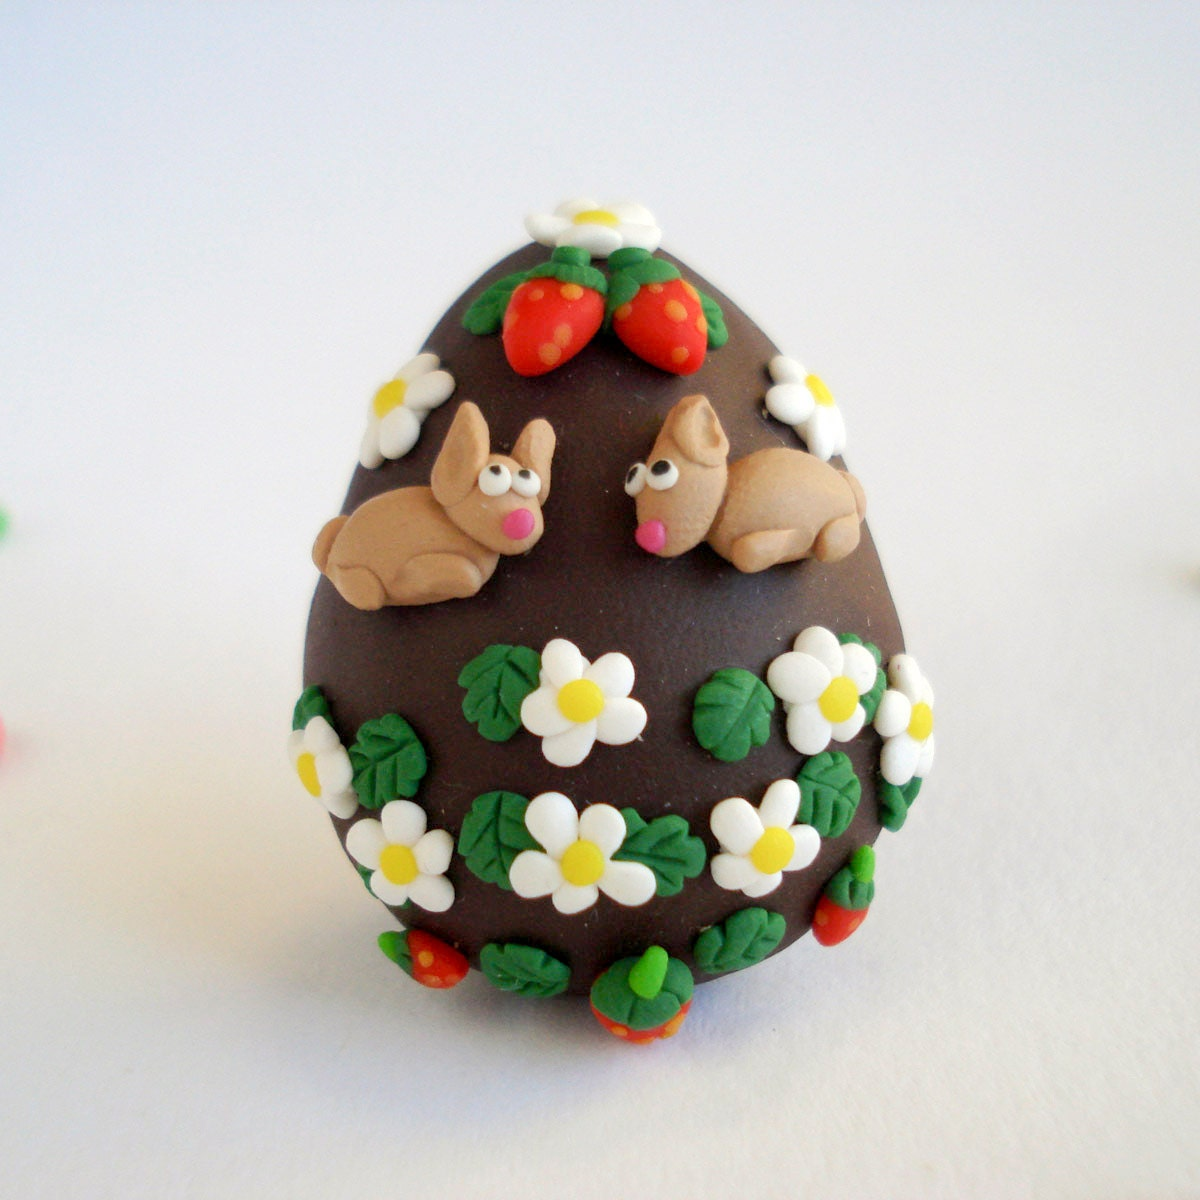 Easter Egg Brooch Bunnies and Strawberry Fields, Fun chocolate jewelry - Thelittlecreatures